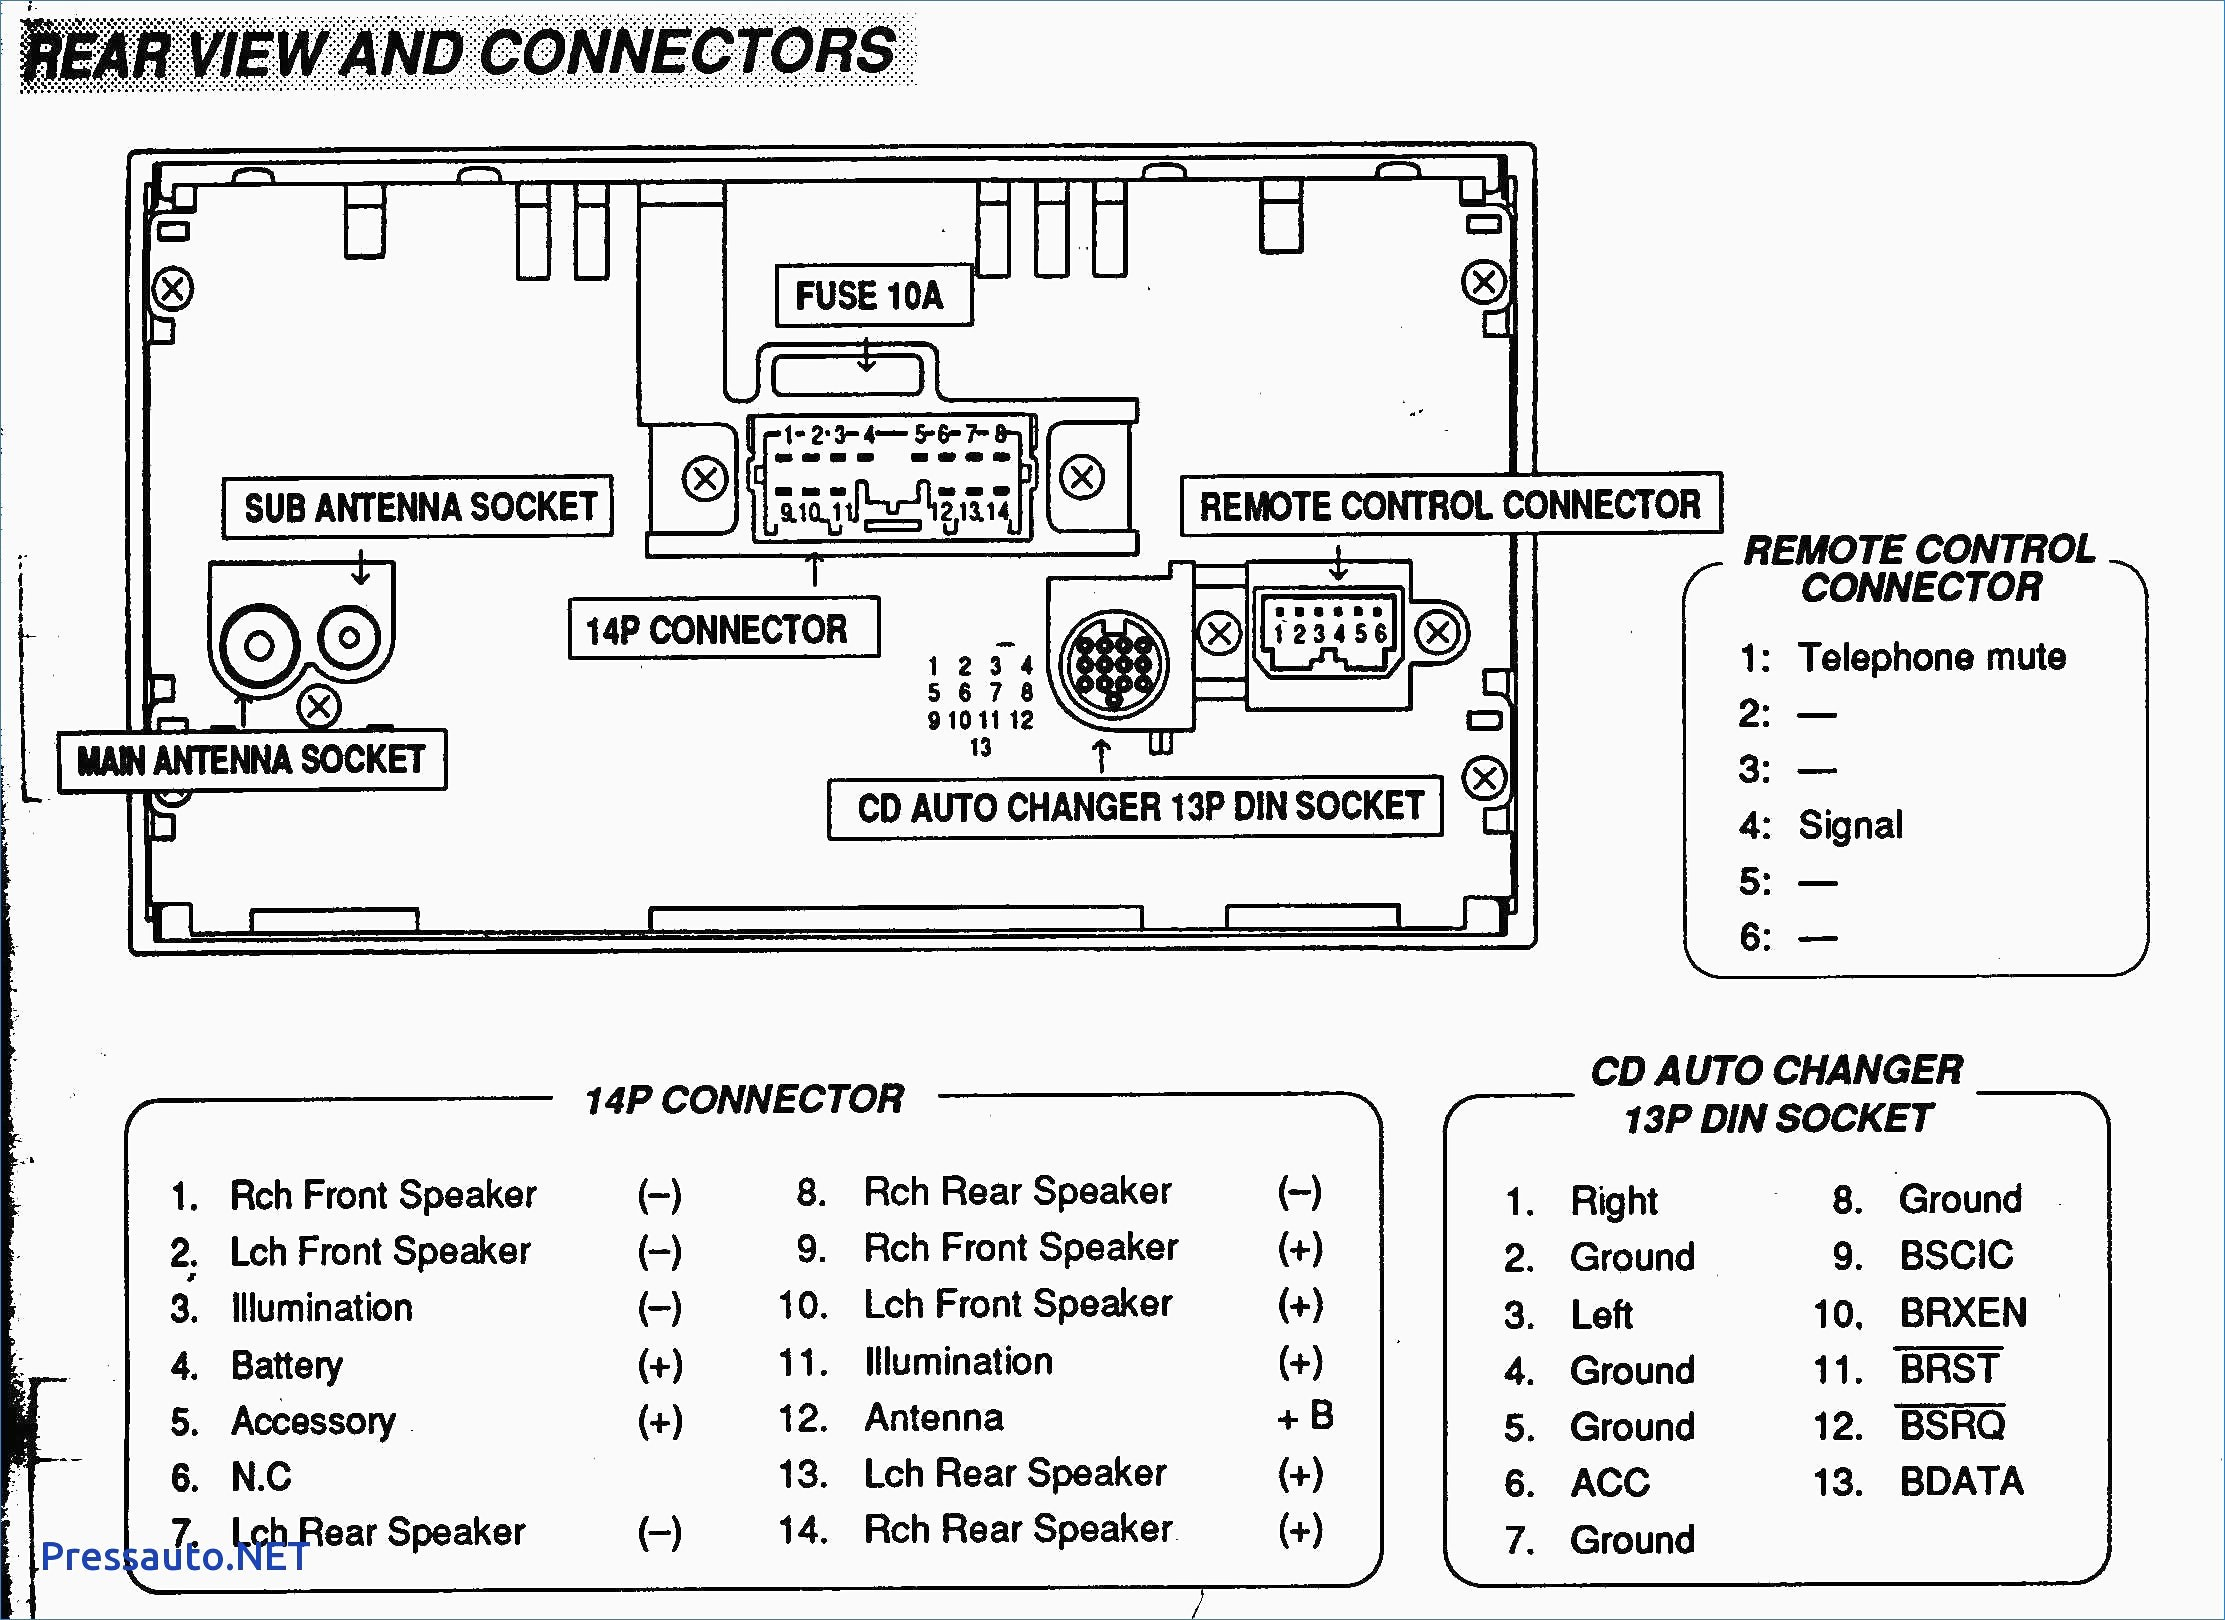 2006 Jeep Commander Lift Gate Wiring Diagram Top Engine Fuse 6 Speakers 2 Channel Amp Car Sub Wire